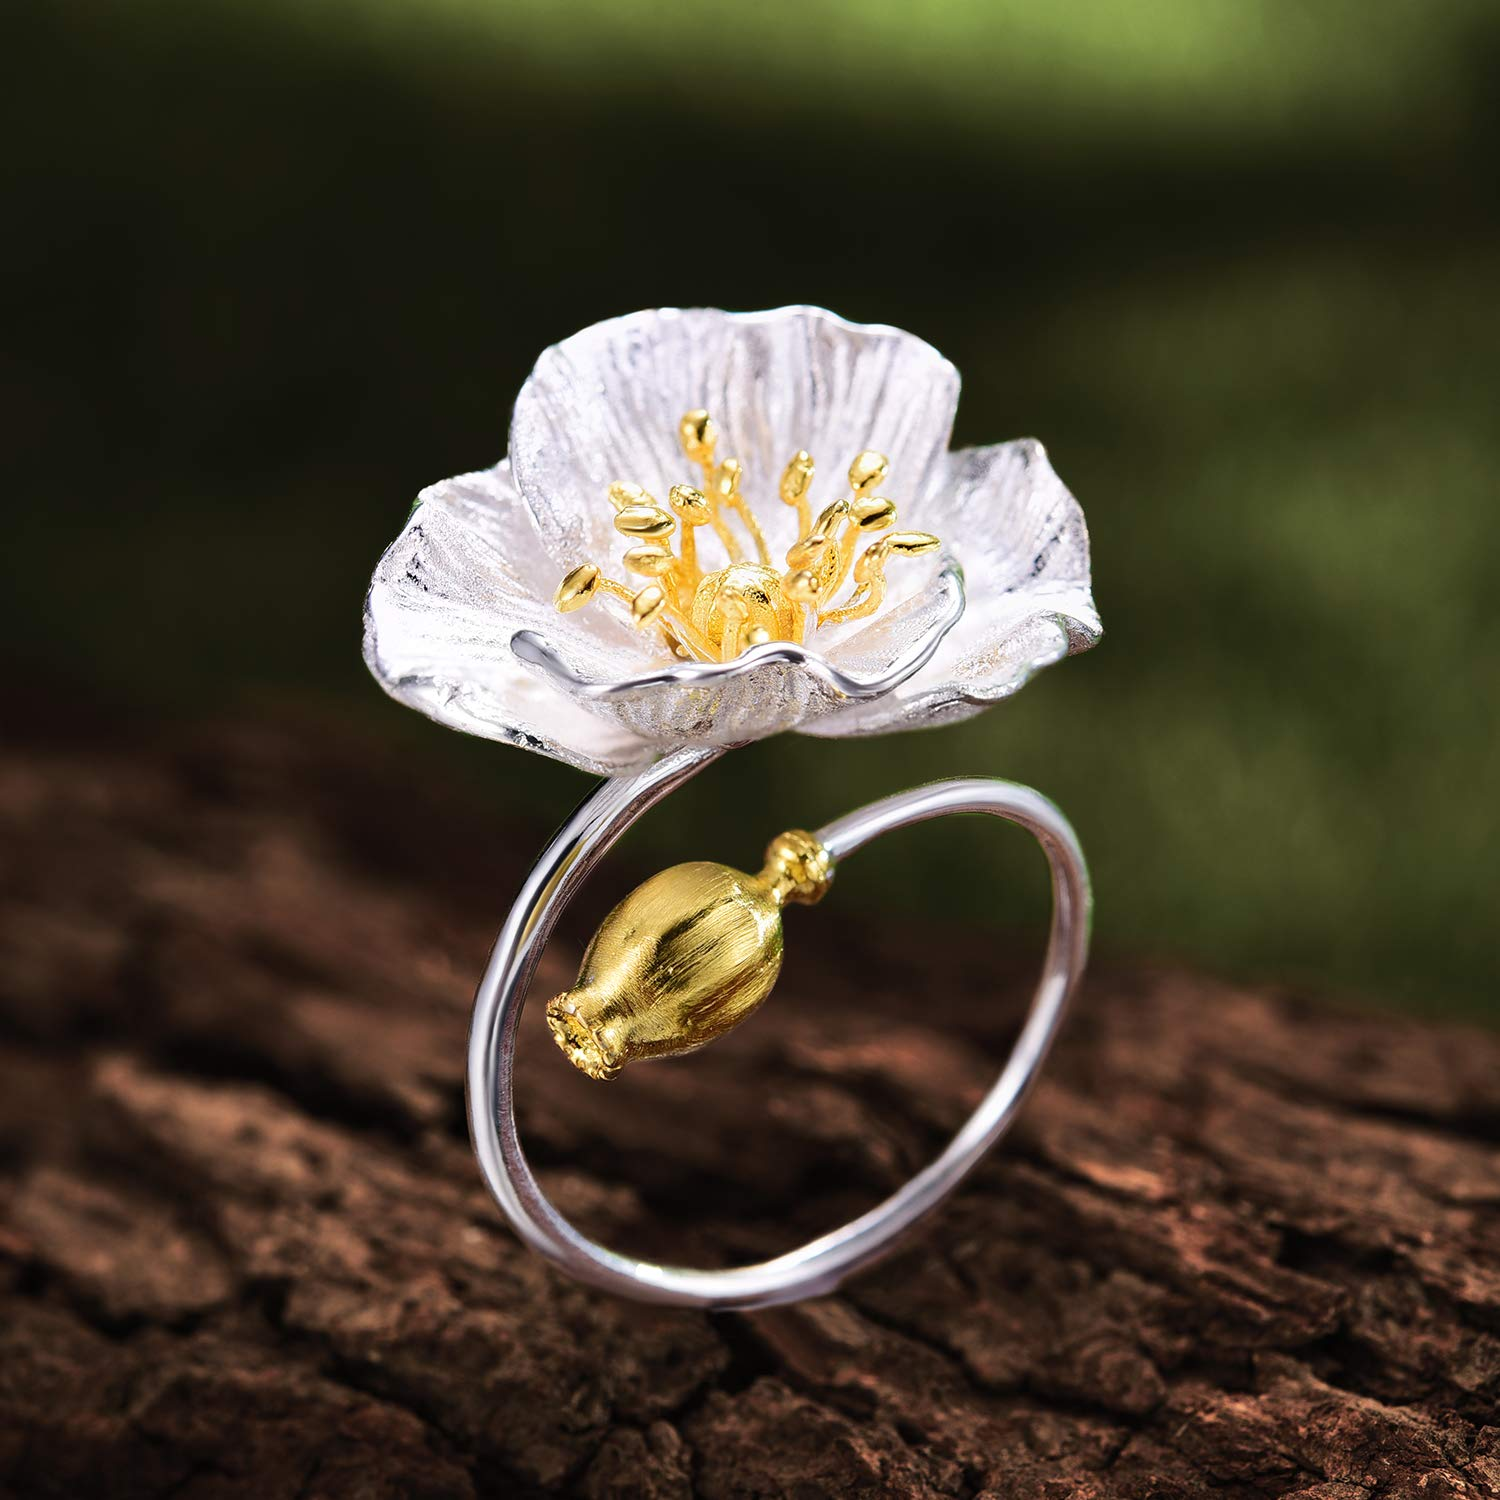 Lotus Fun S925 Sterling Silver Rings Blooming Poppies Flower Rings Funny Original Design Adjustable Rings Handmade Jewelry Unique Gift for Women and Girls